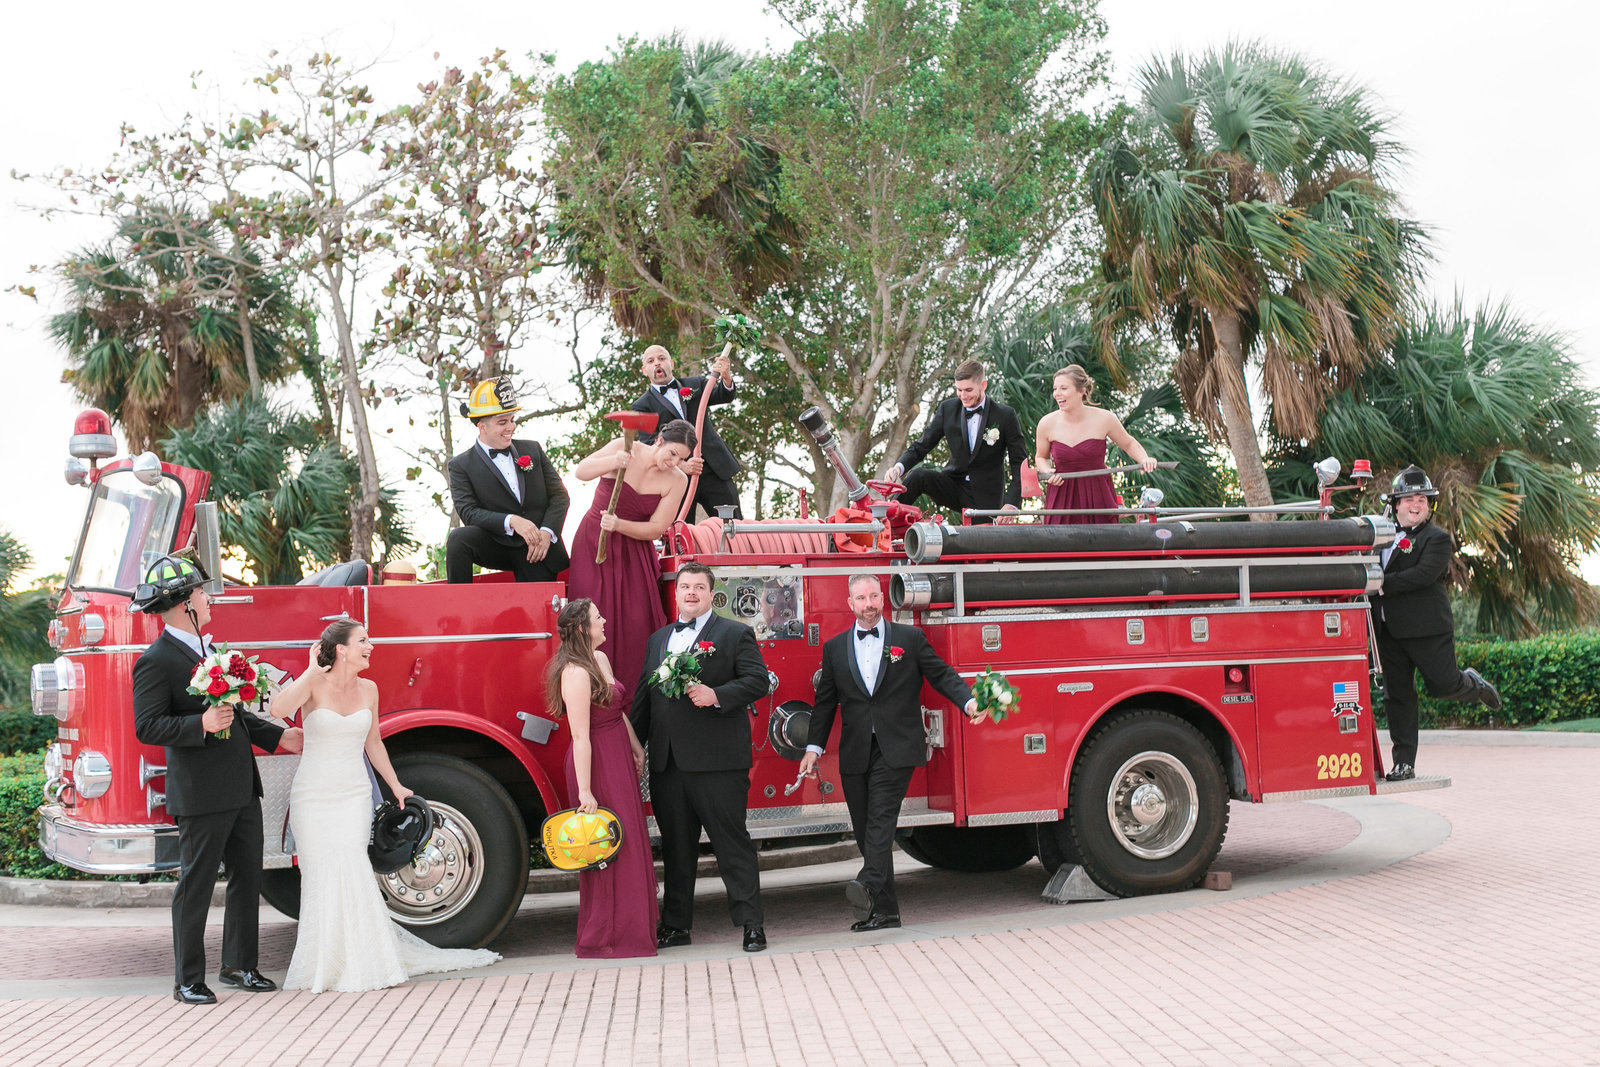 Bride, groom, bridesmaids, and groomsman  in a photo with a firetruck at mansion of tuckahoe